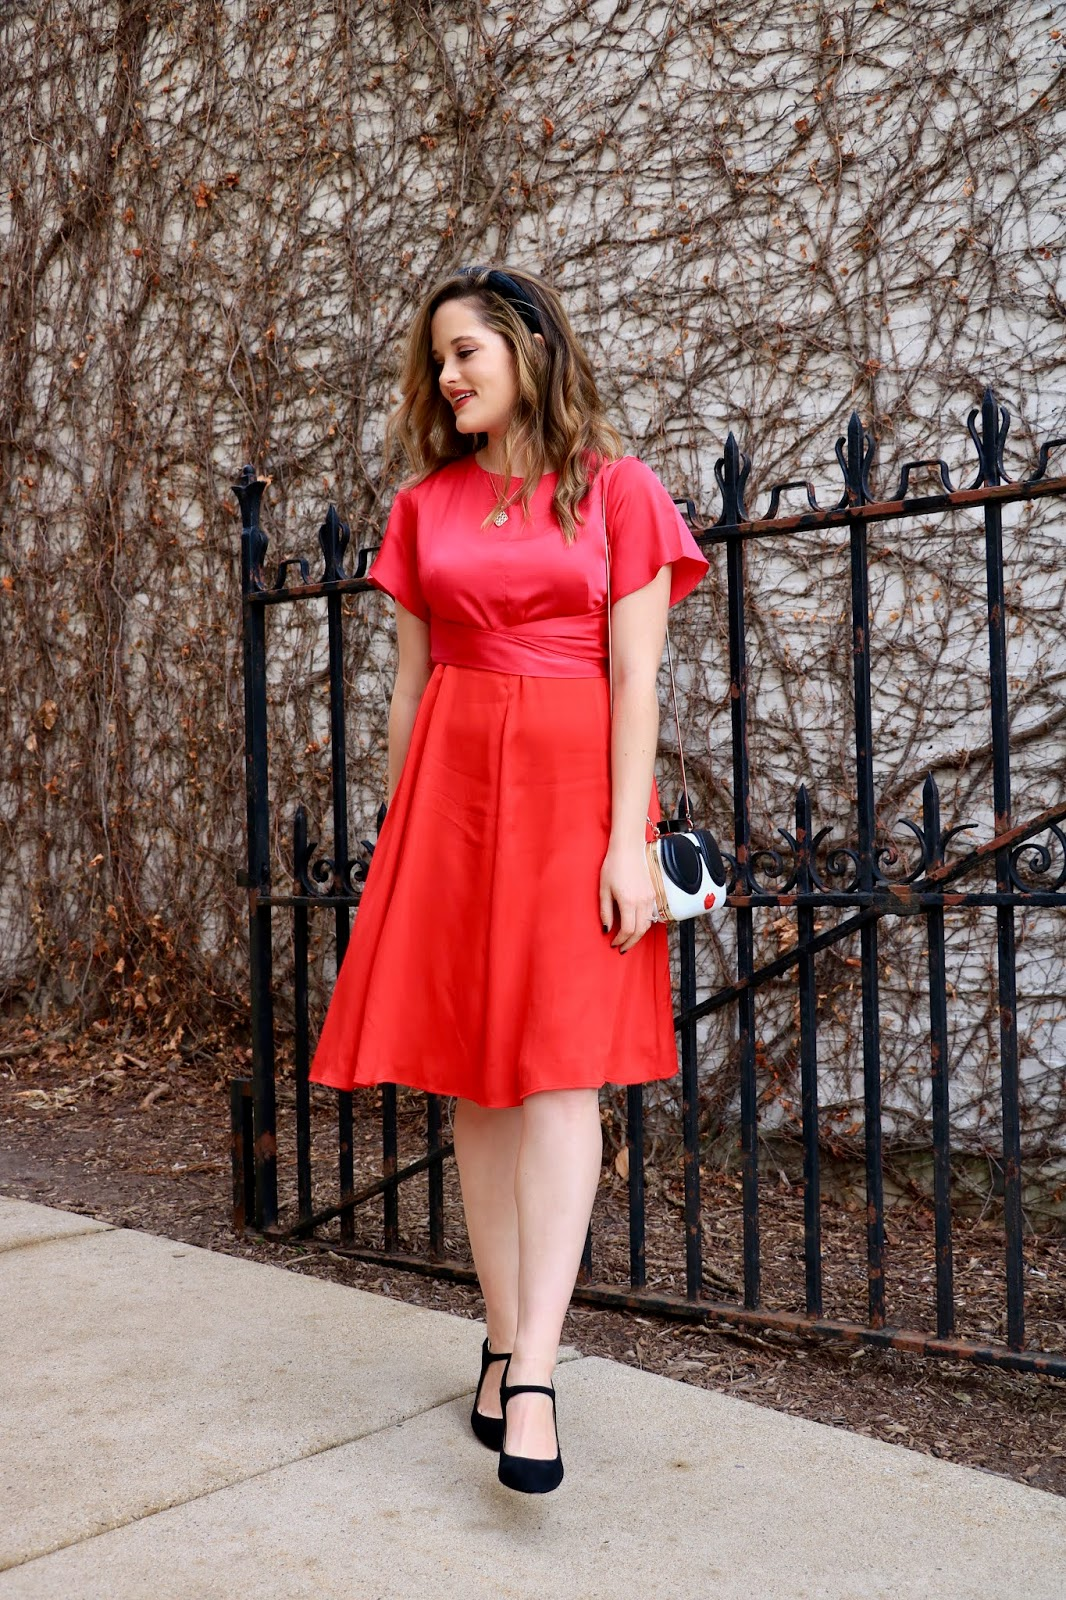 Nyc fashion blogger Kathleen Harper wearing a pink and red Valentine's Day outfit.